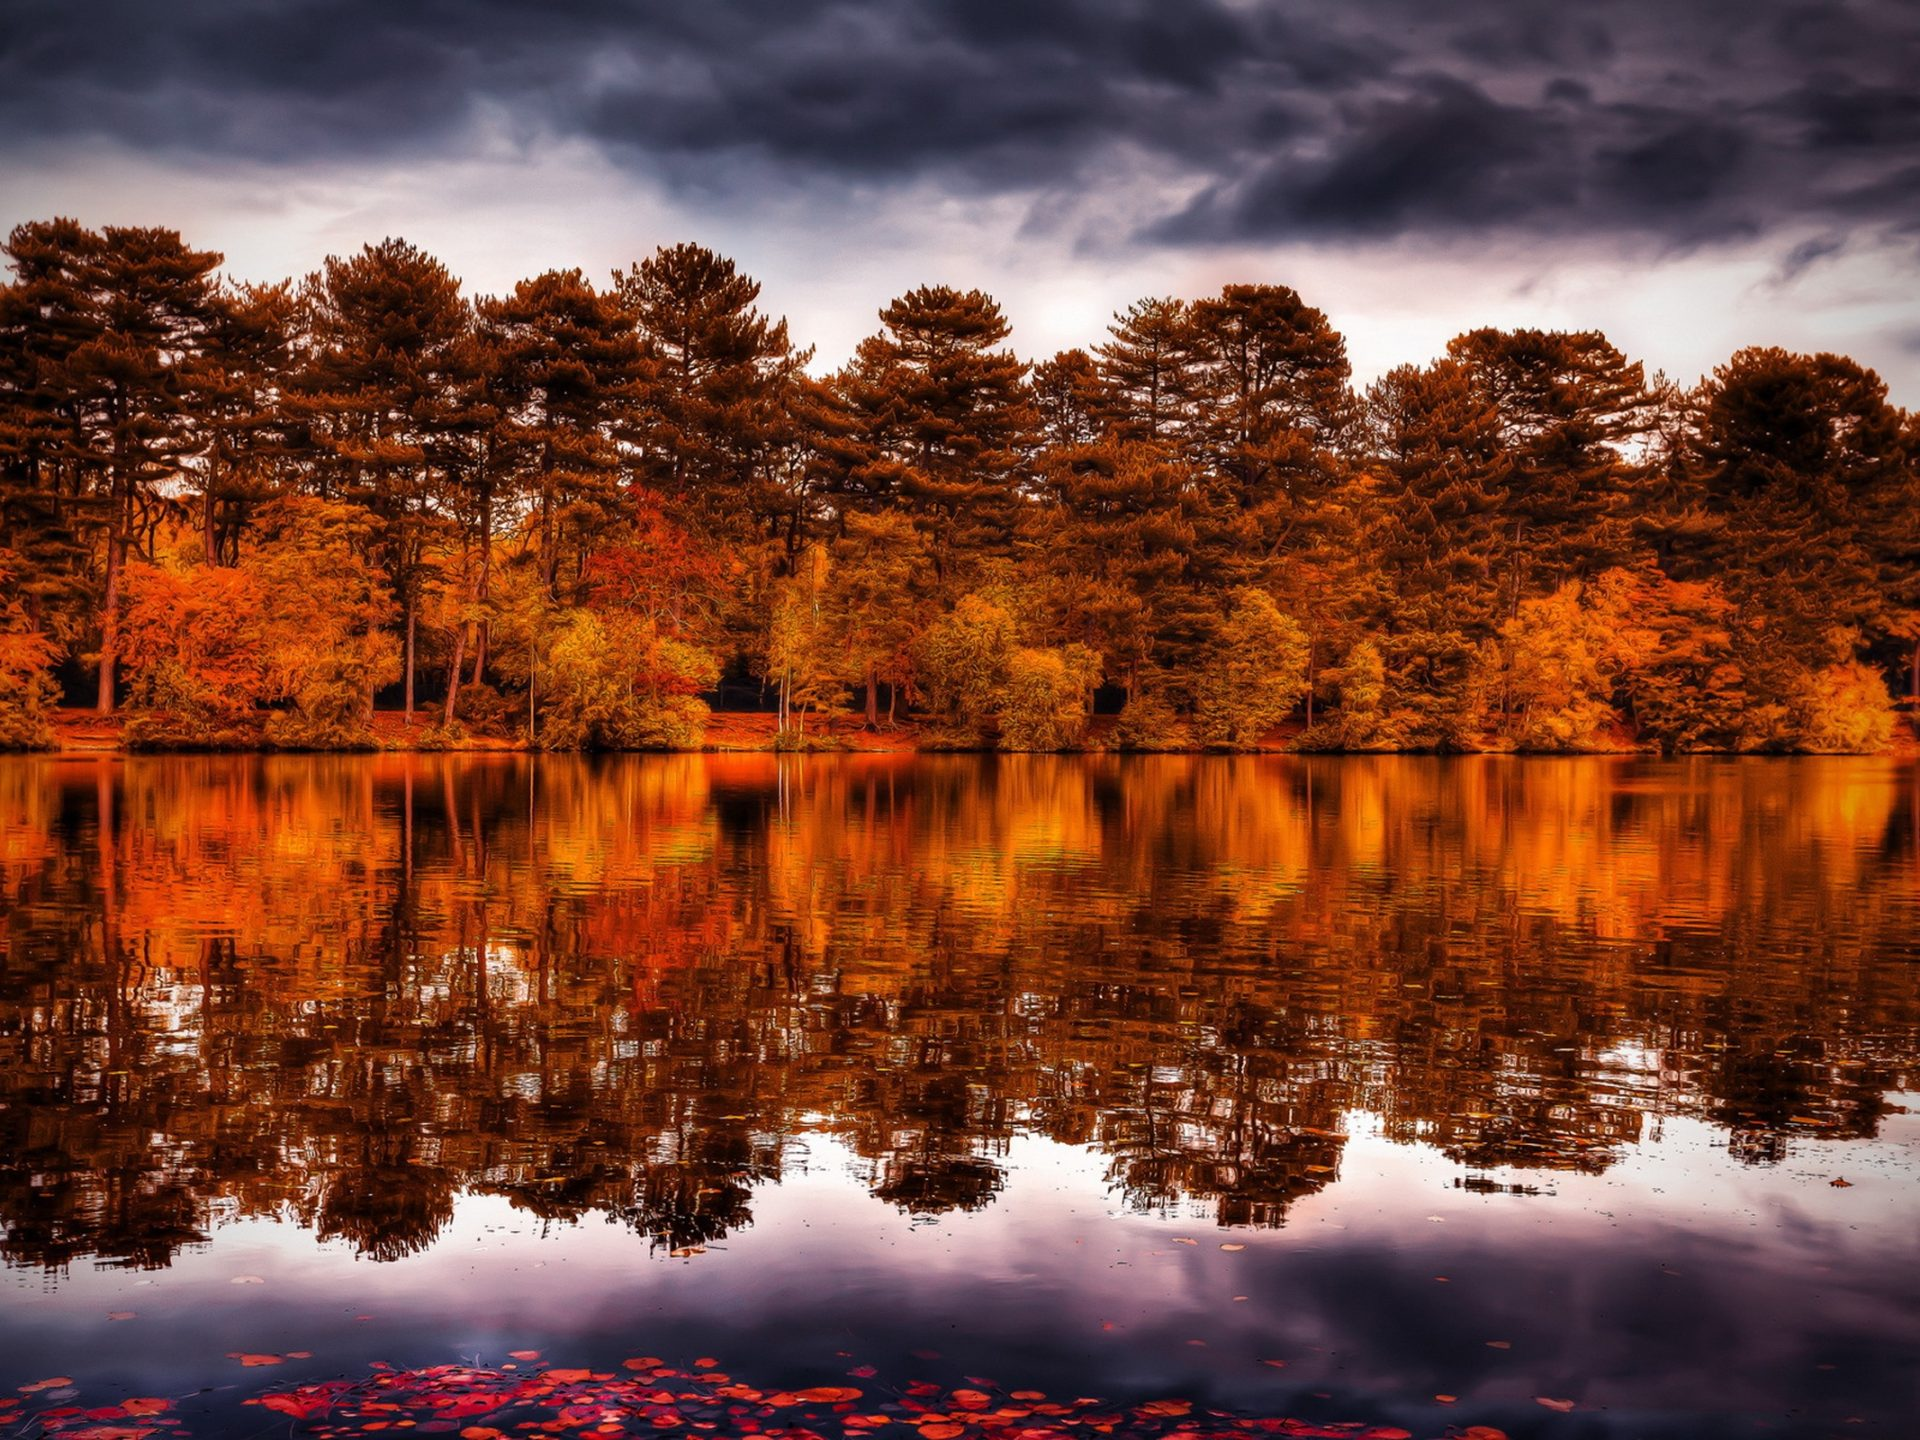 Fall Fields Wallpaper For Iphone Reflection Trees Forest Shore Autumn Fall Sky 2560x1600